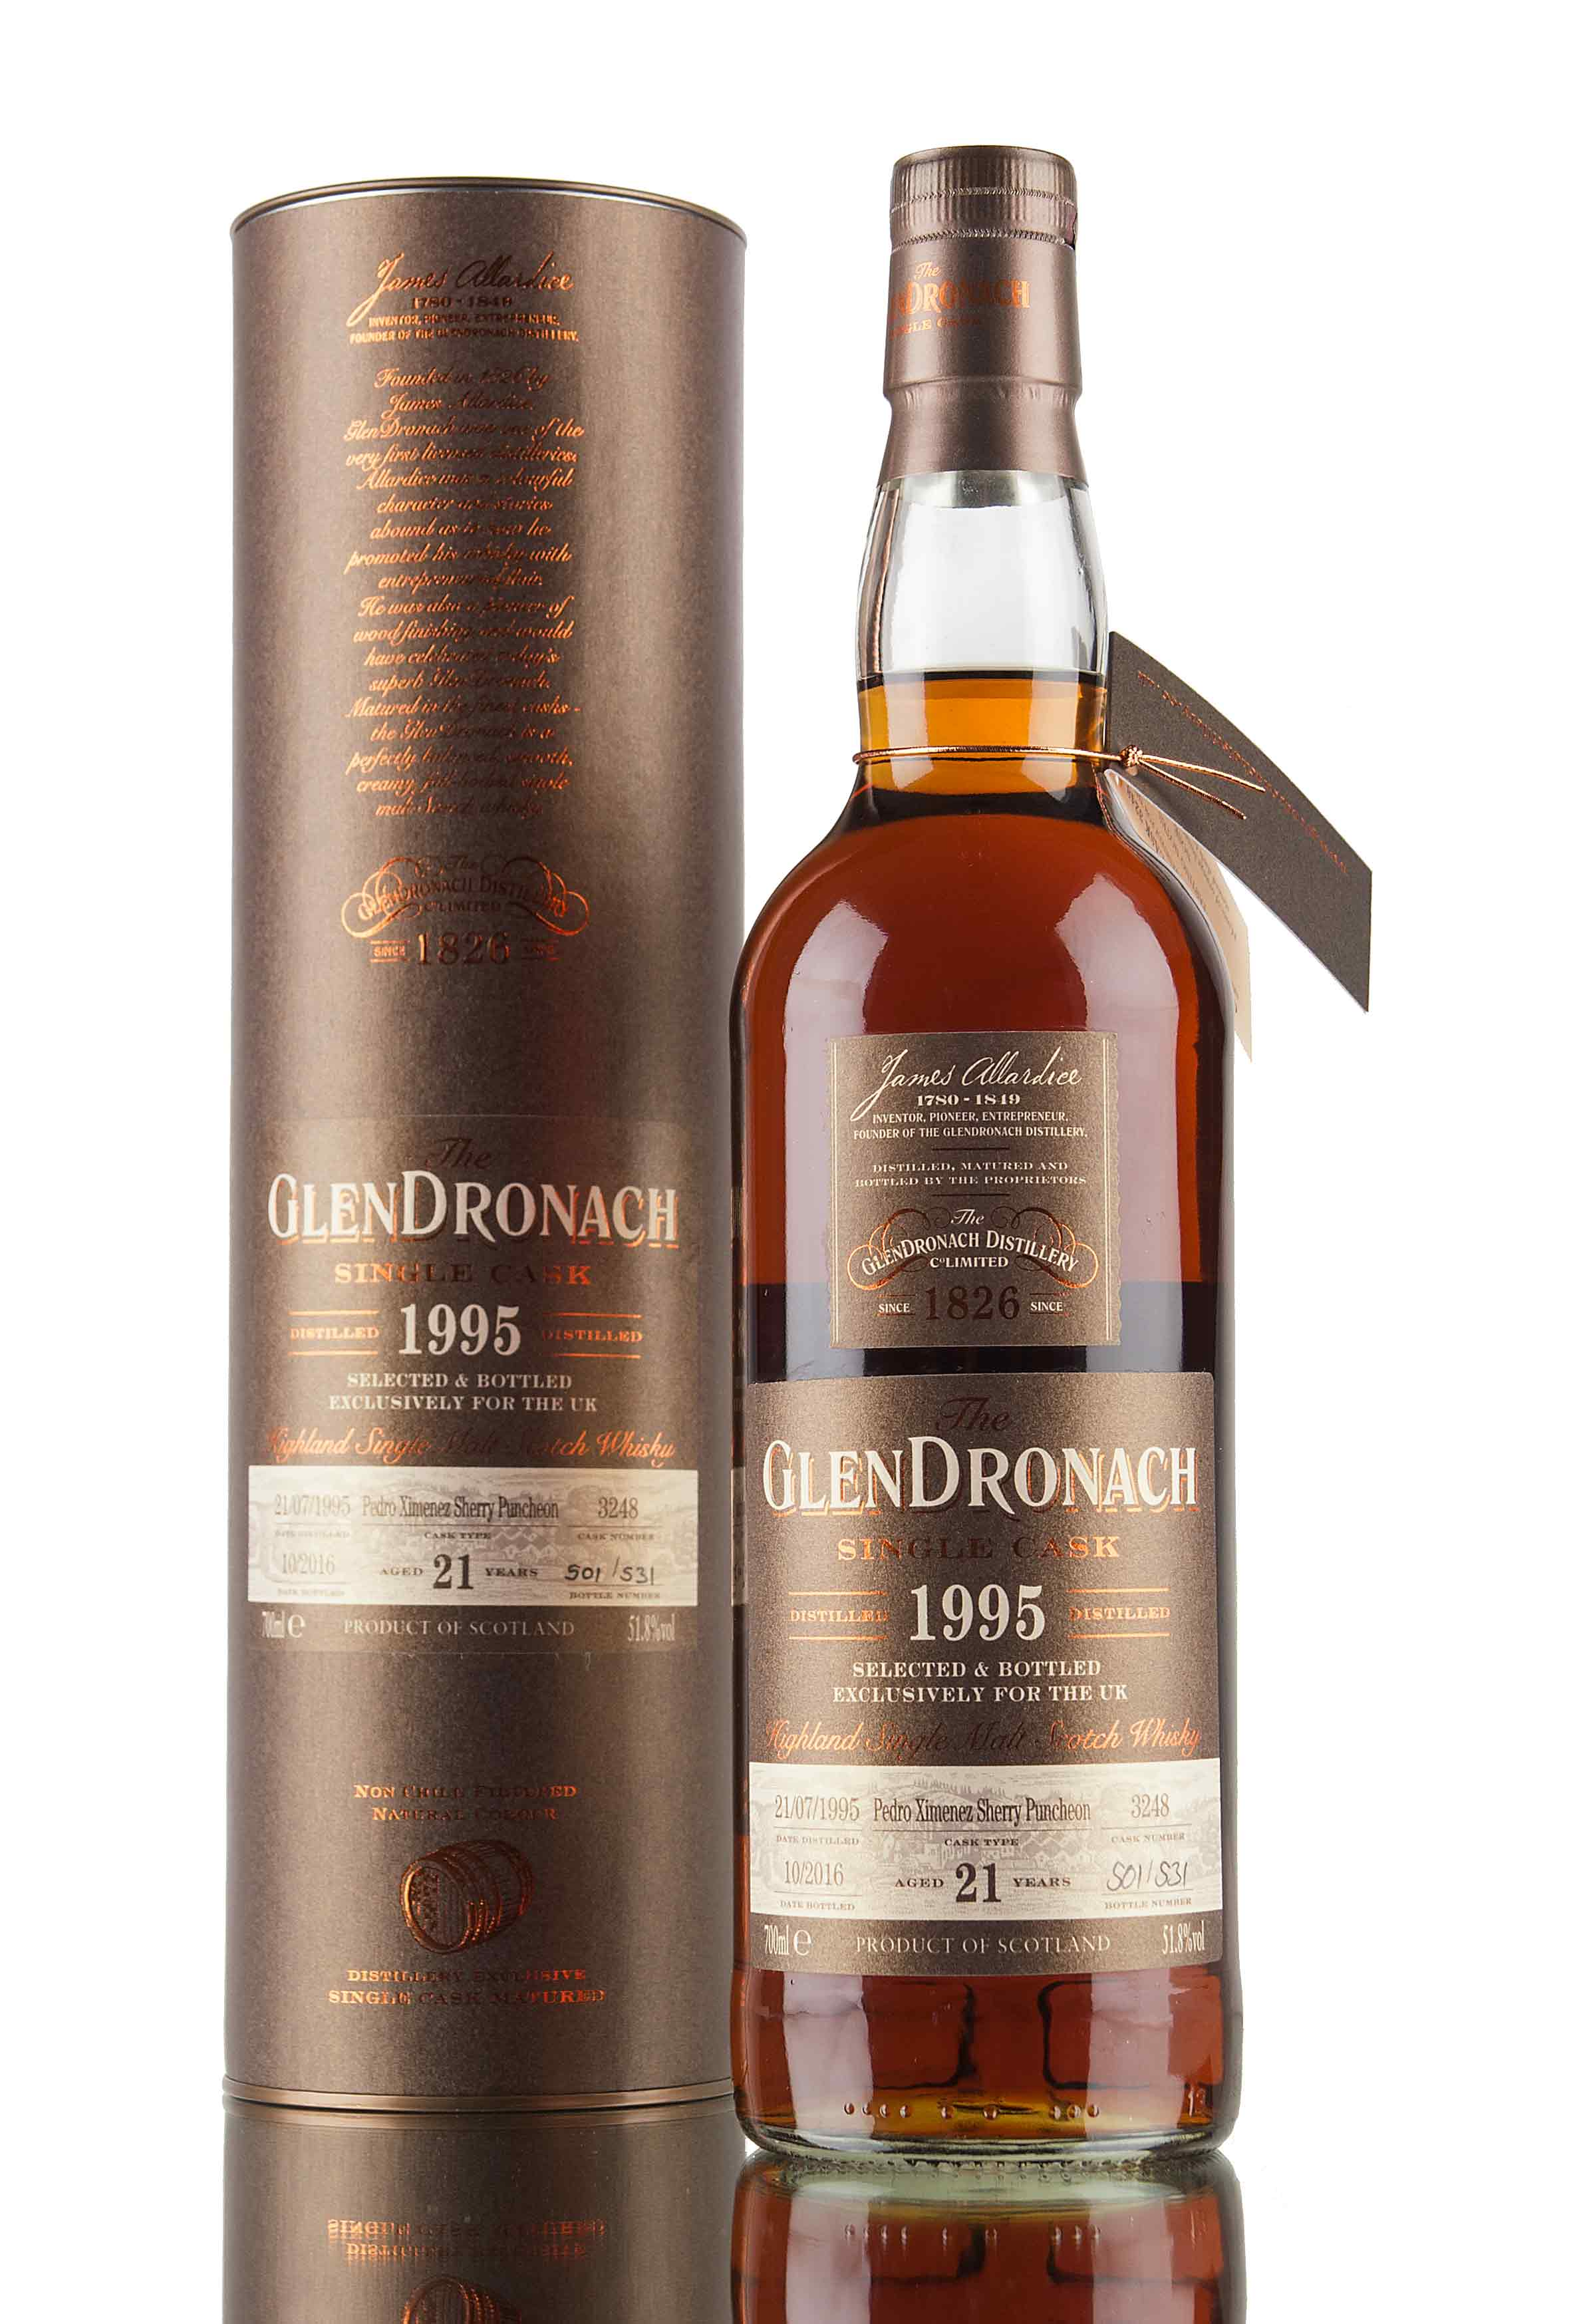 GlenDronach 21 Year Old - 1995 / Single Cask #3248